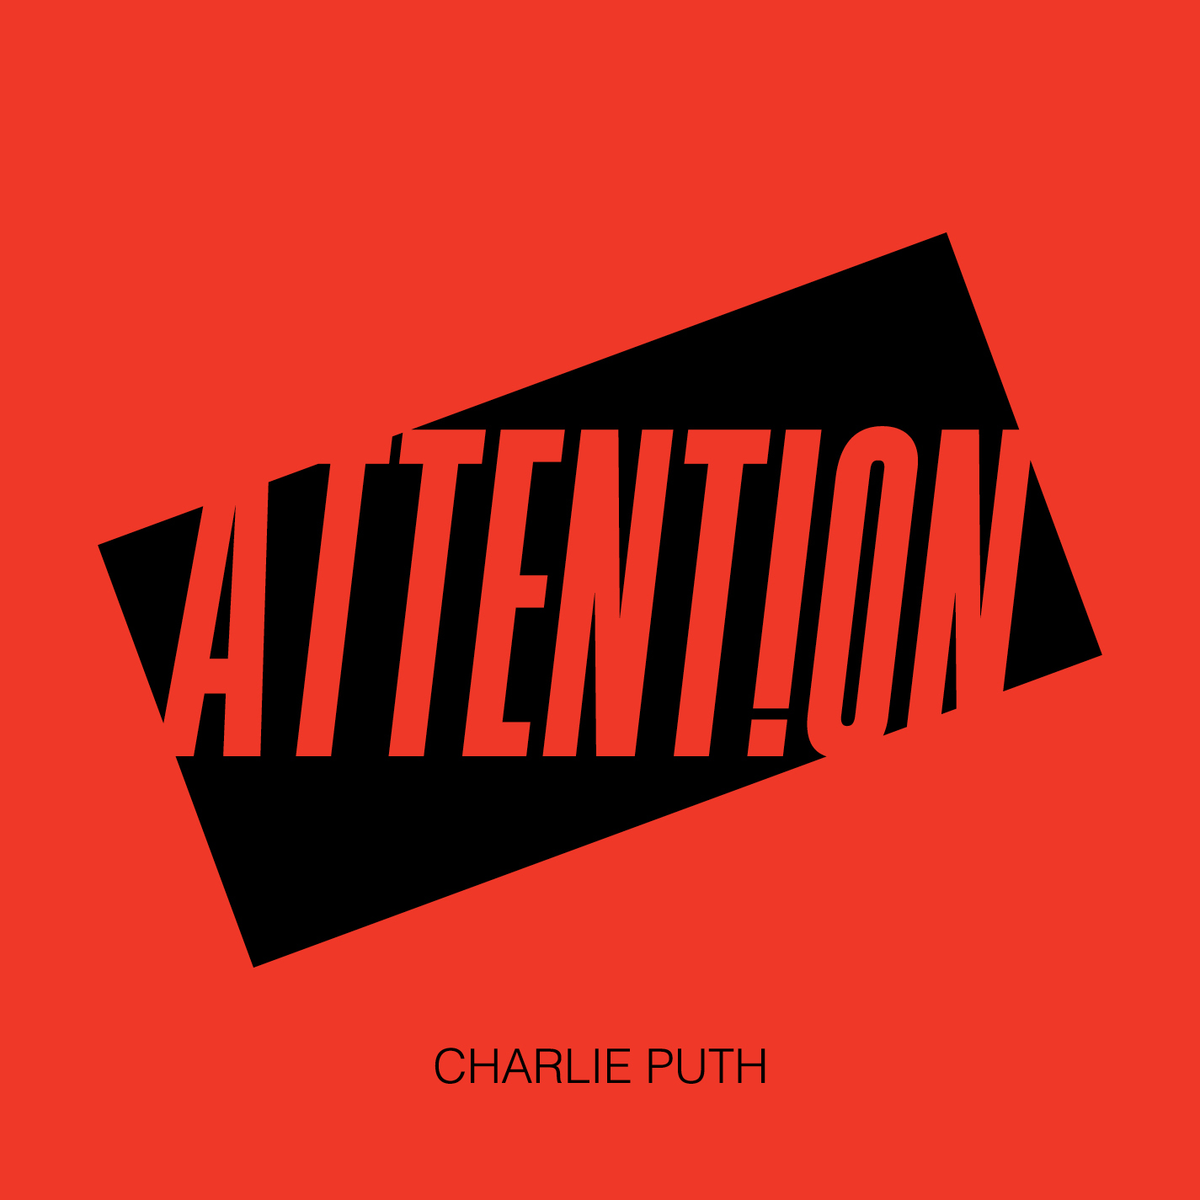 Attention (Charlie Puth song) - Wikipedia